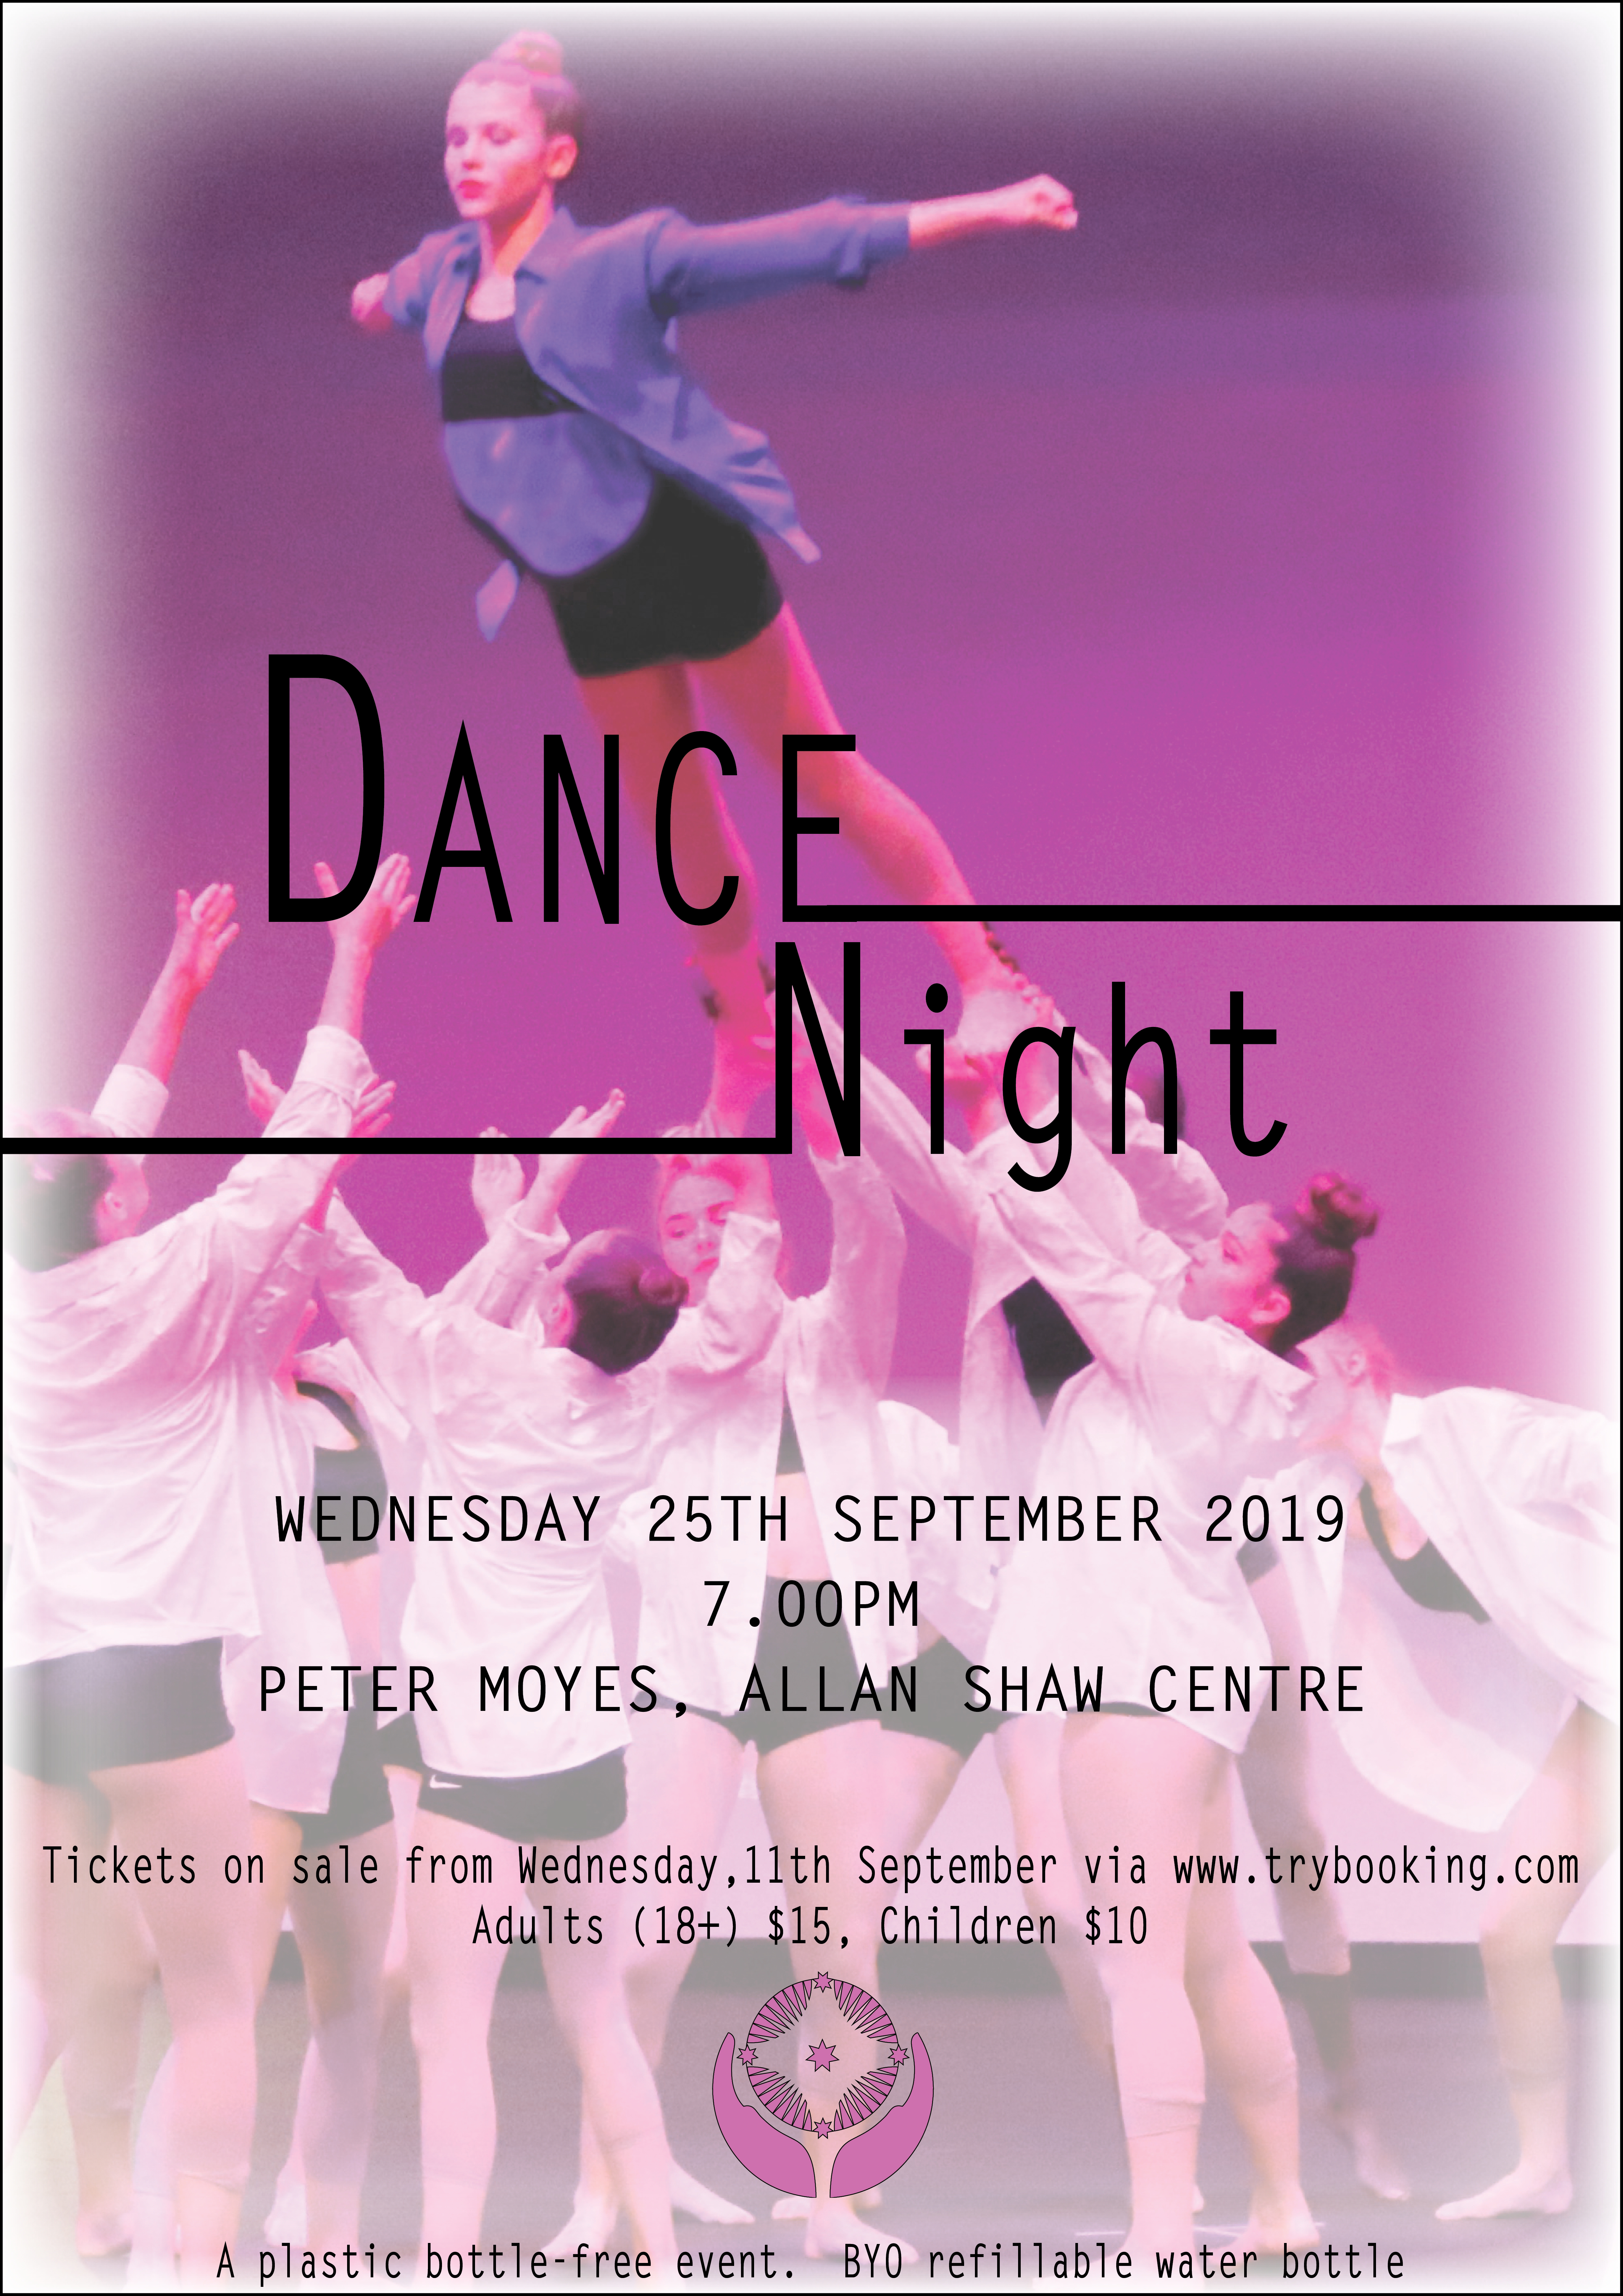 Dance Night Poster 2019